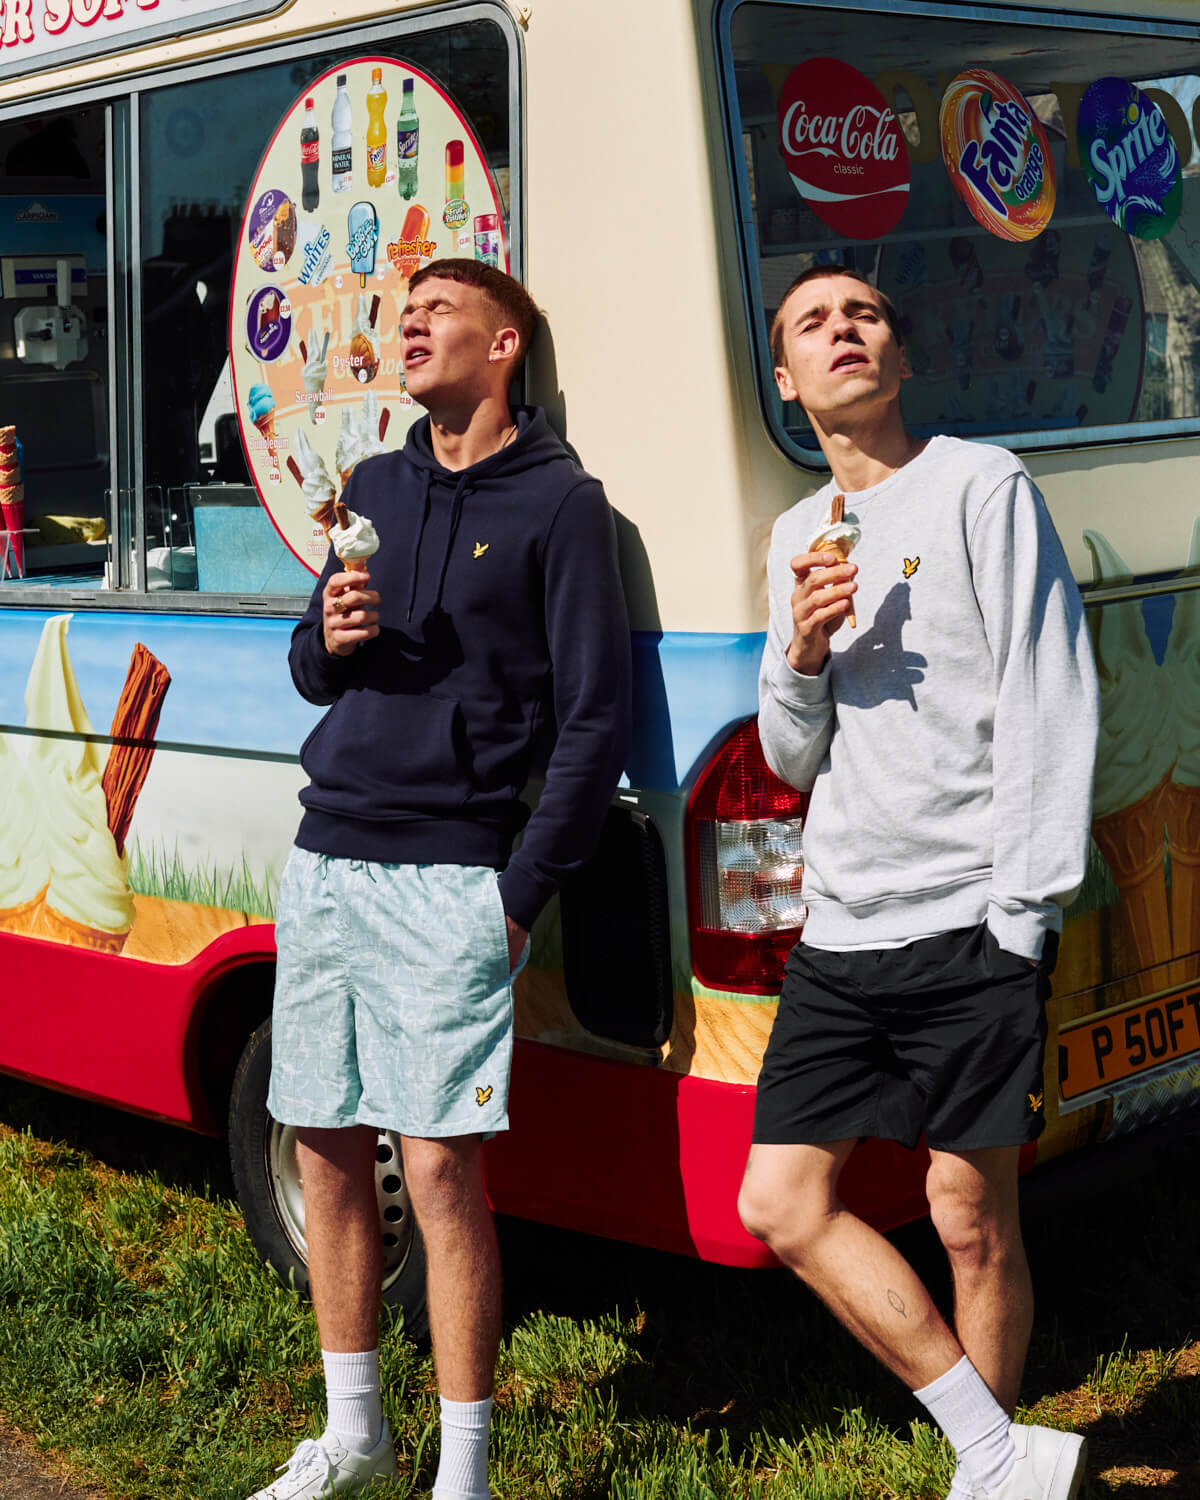 Two ladst eat ice cream by  van by lifestyle photographer Tim Cole